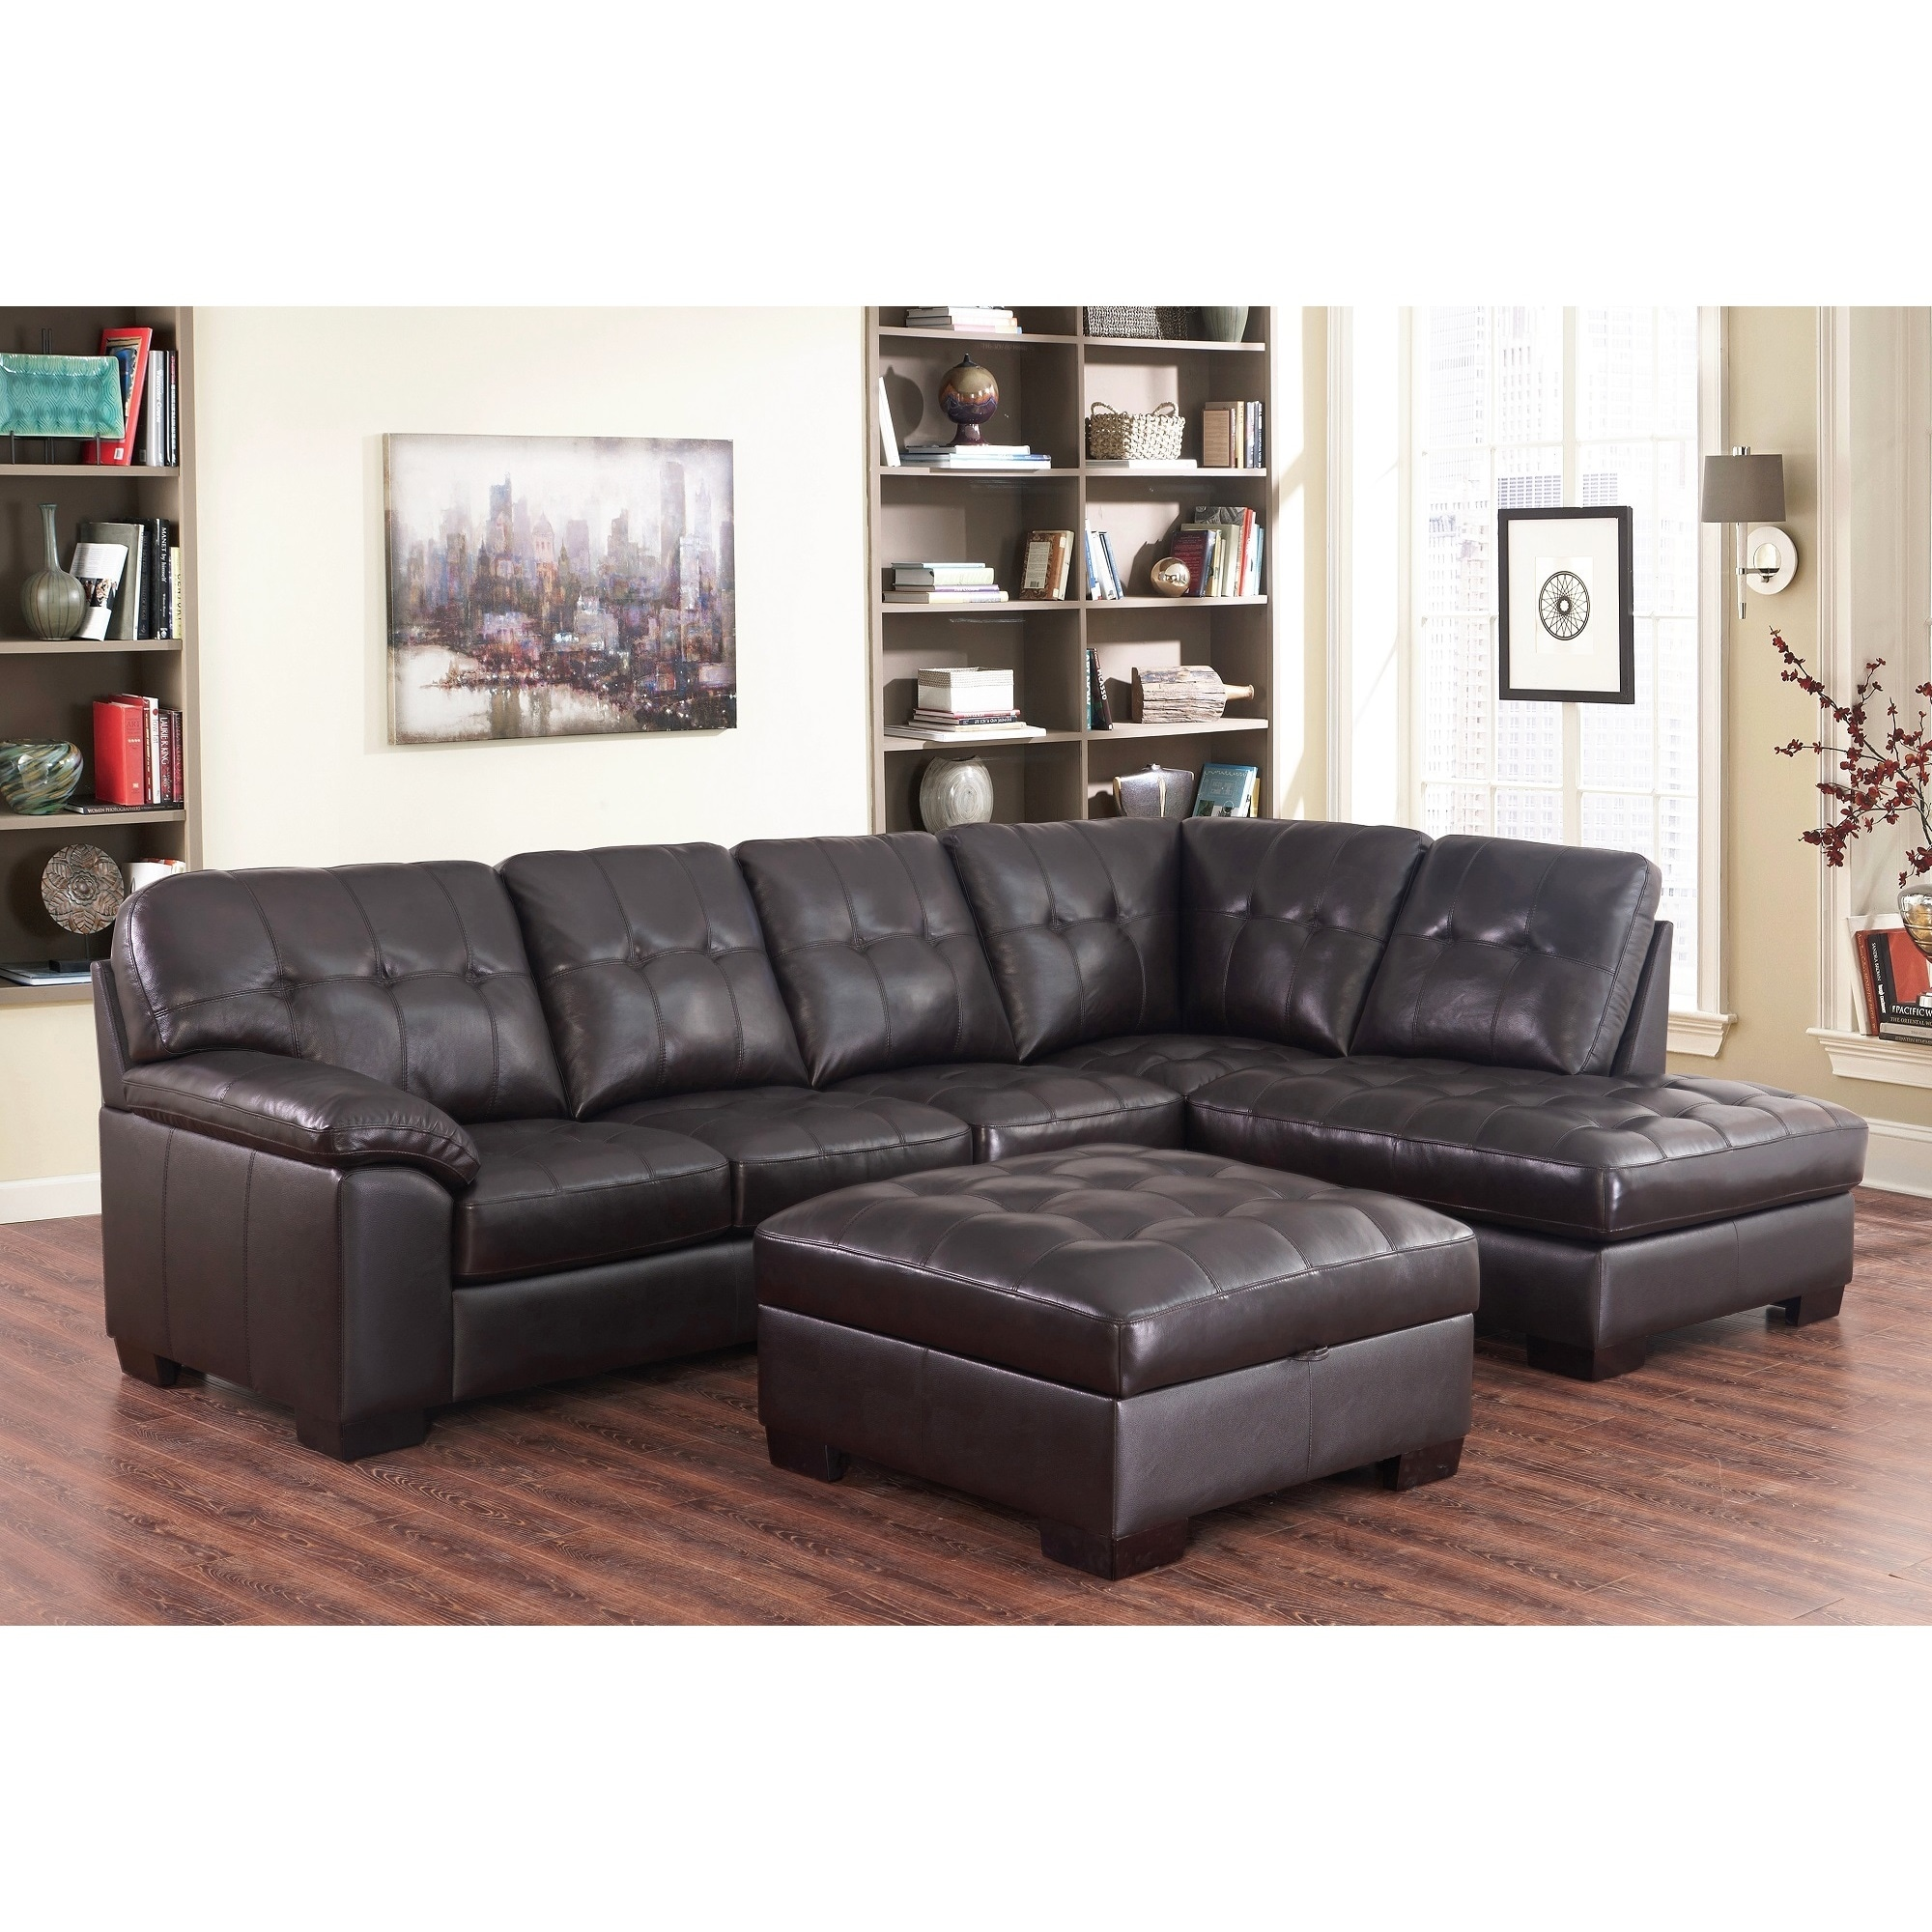 Peachy Abbyson Manhattan Espresso Top Grain Leather Sectional And Ottoman Gamerscity Chair Design For Home Gamerscityorg